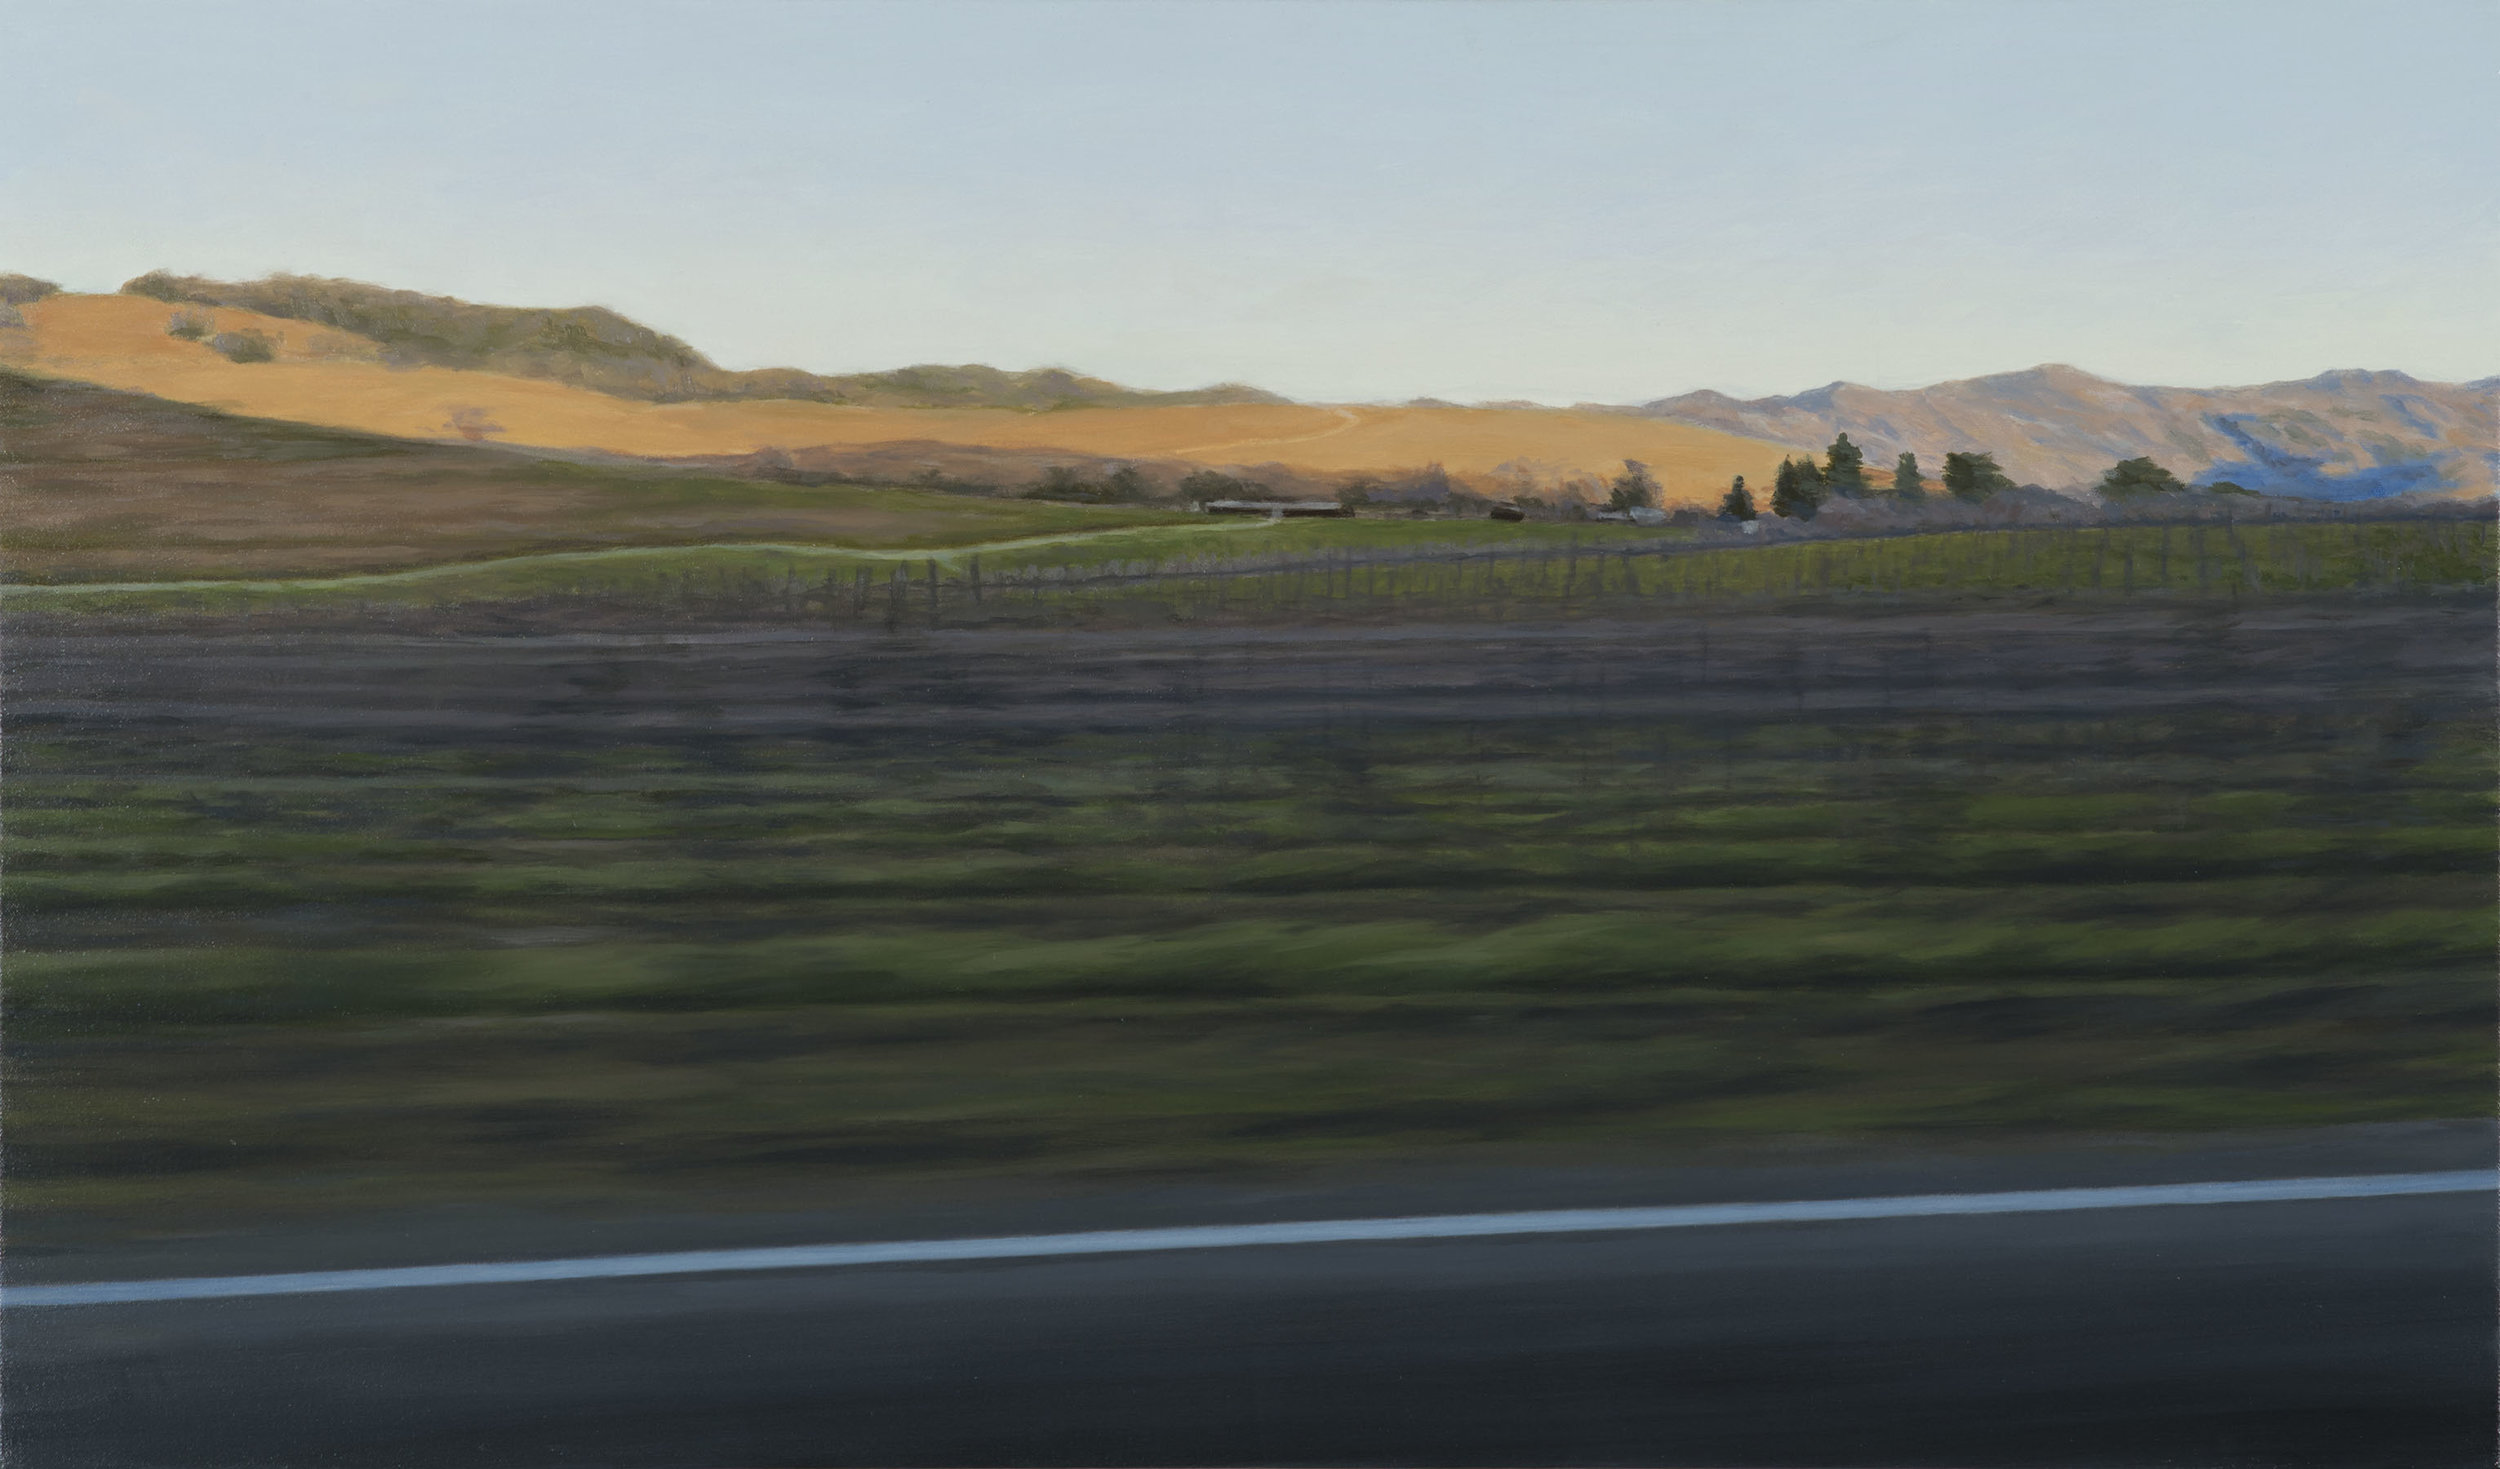 J. Krause Chapeau   Sonoma Sundown   2013  Oil on canvas  Signed and dated by the artist,  verso   26 x 44 inches